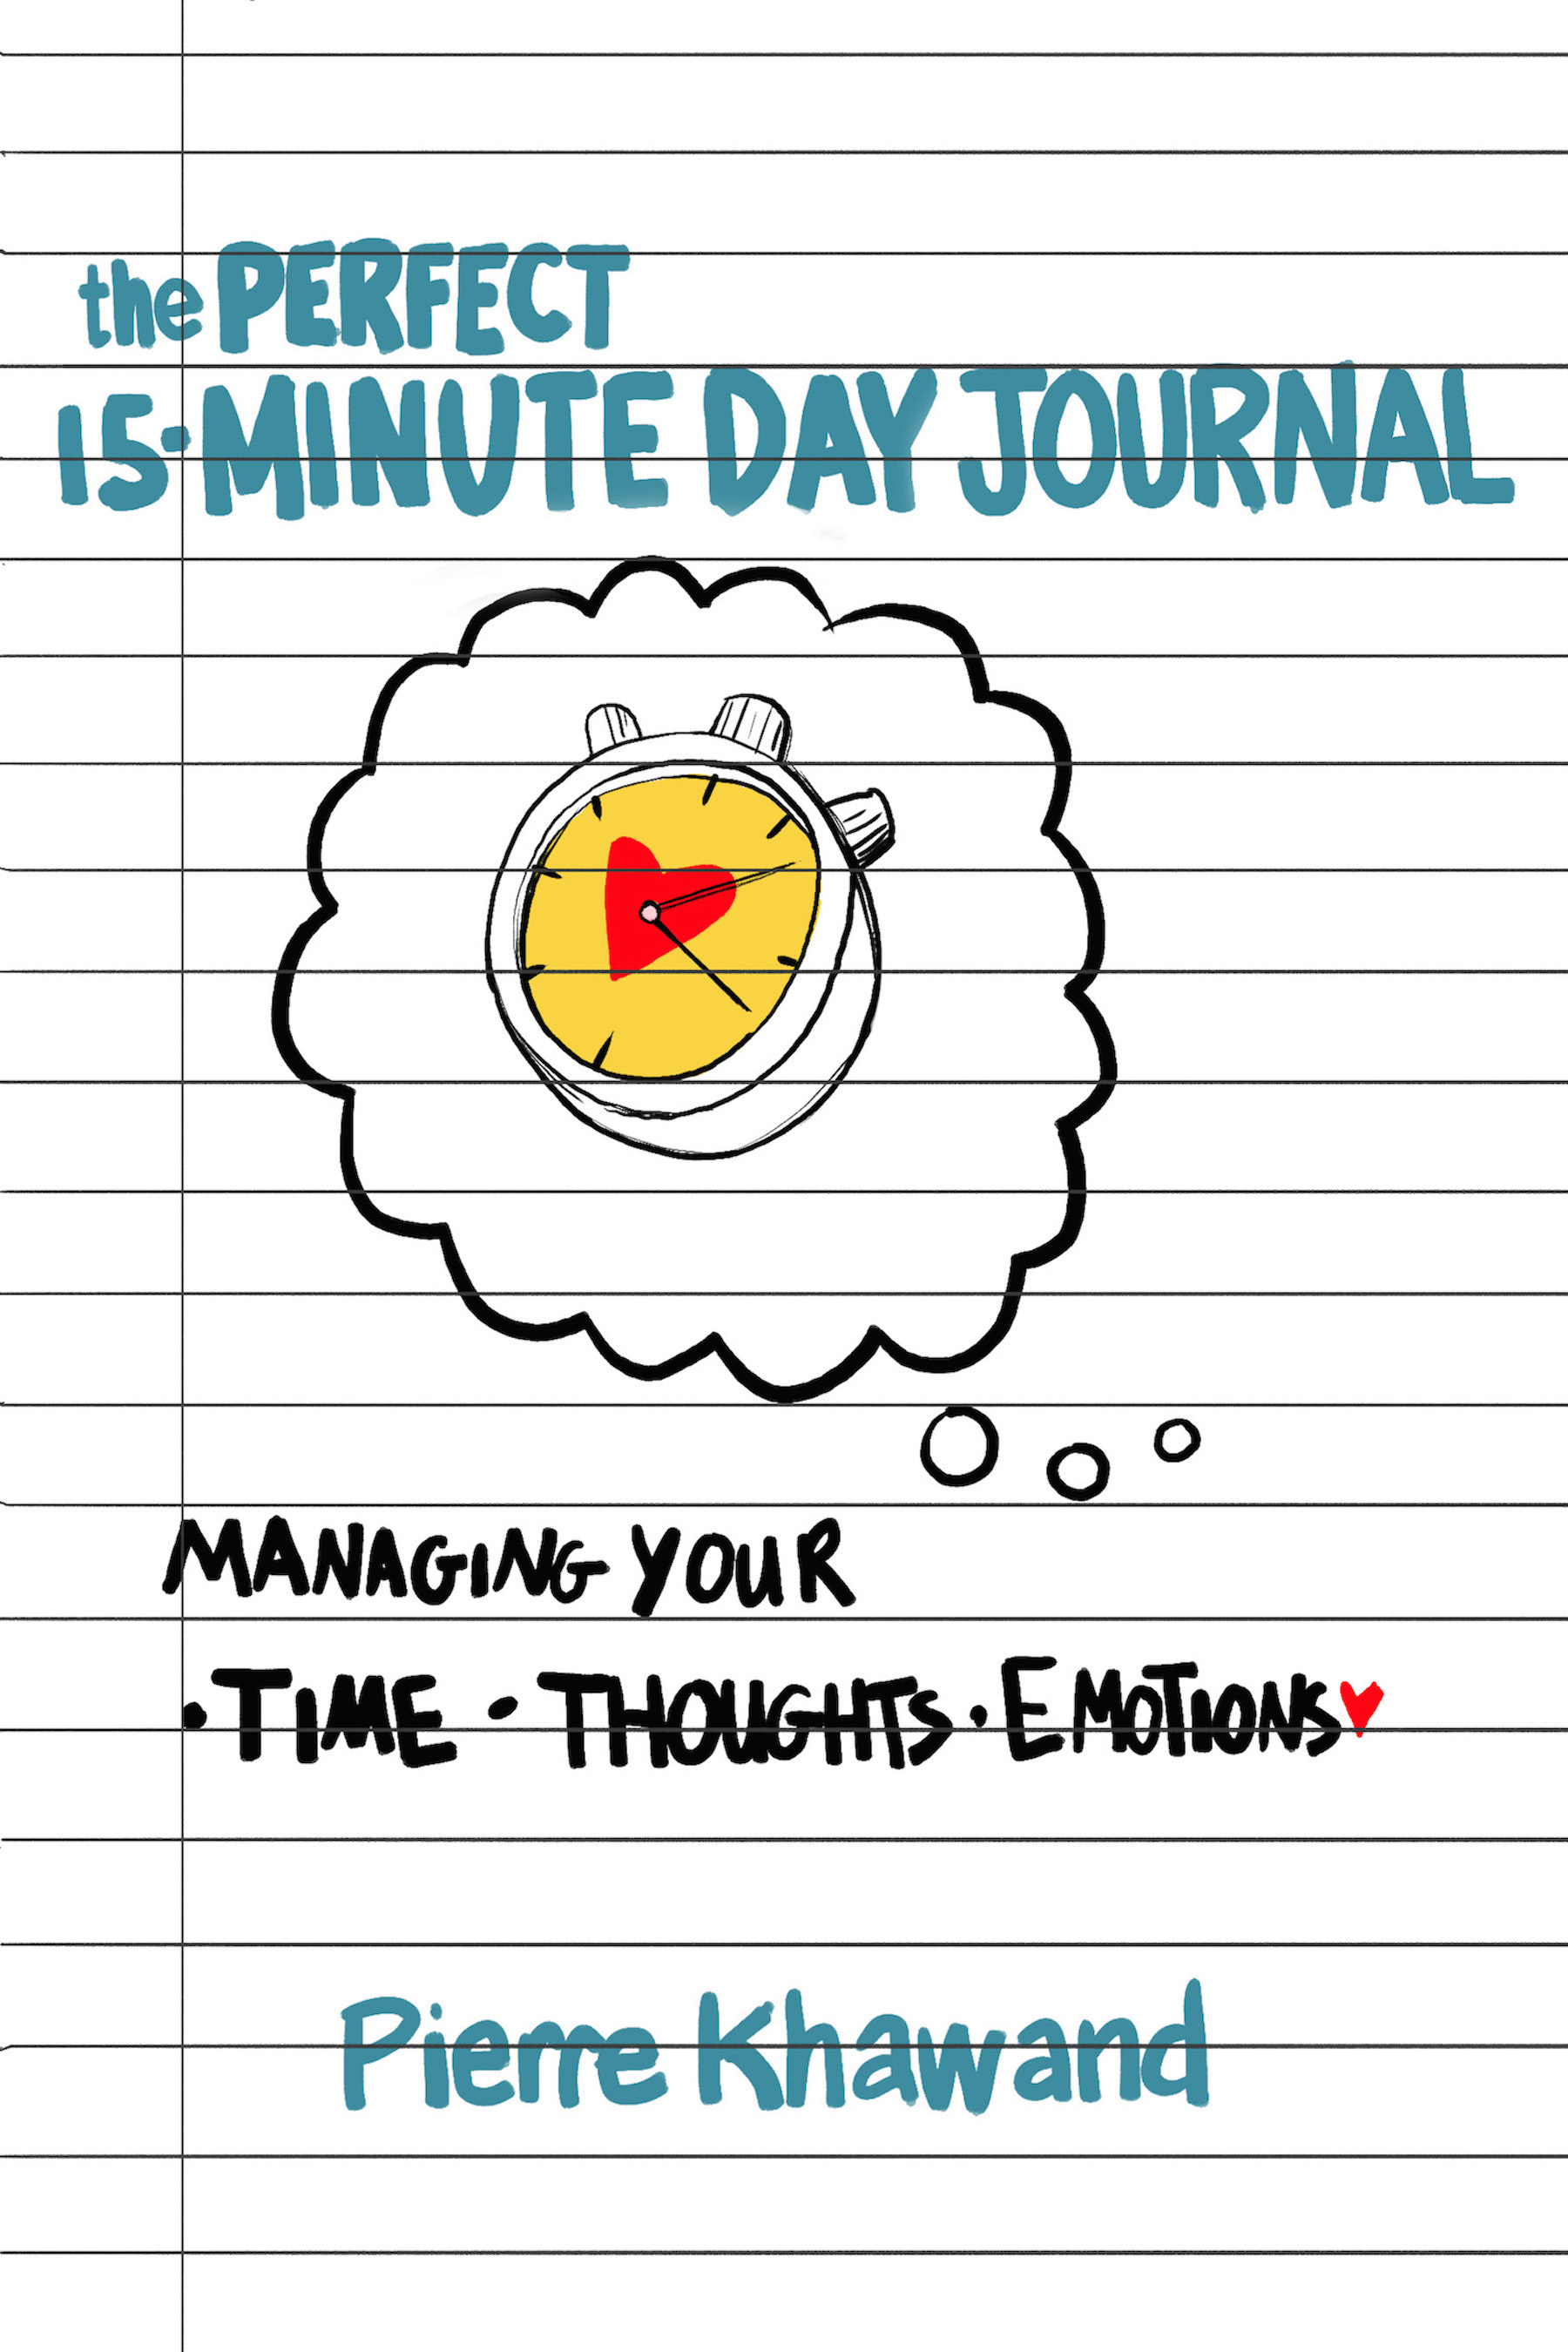 Perfectday_final_journal_cover_May_20_2016.jpg